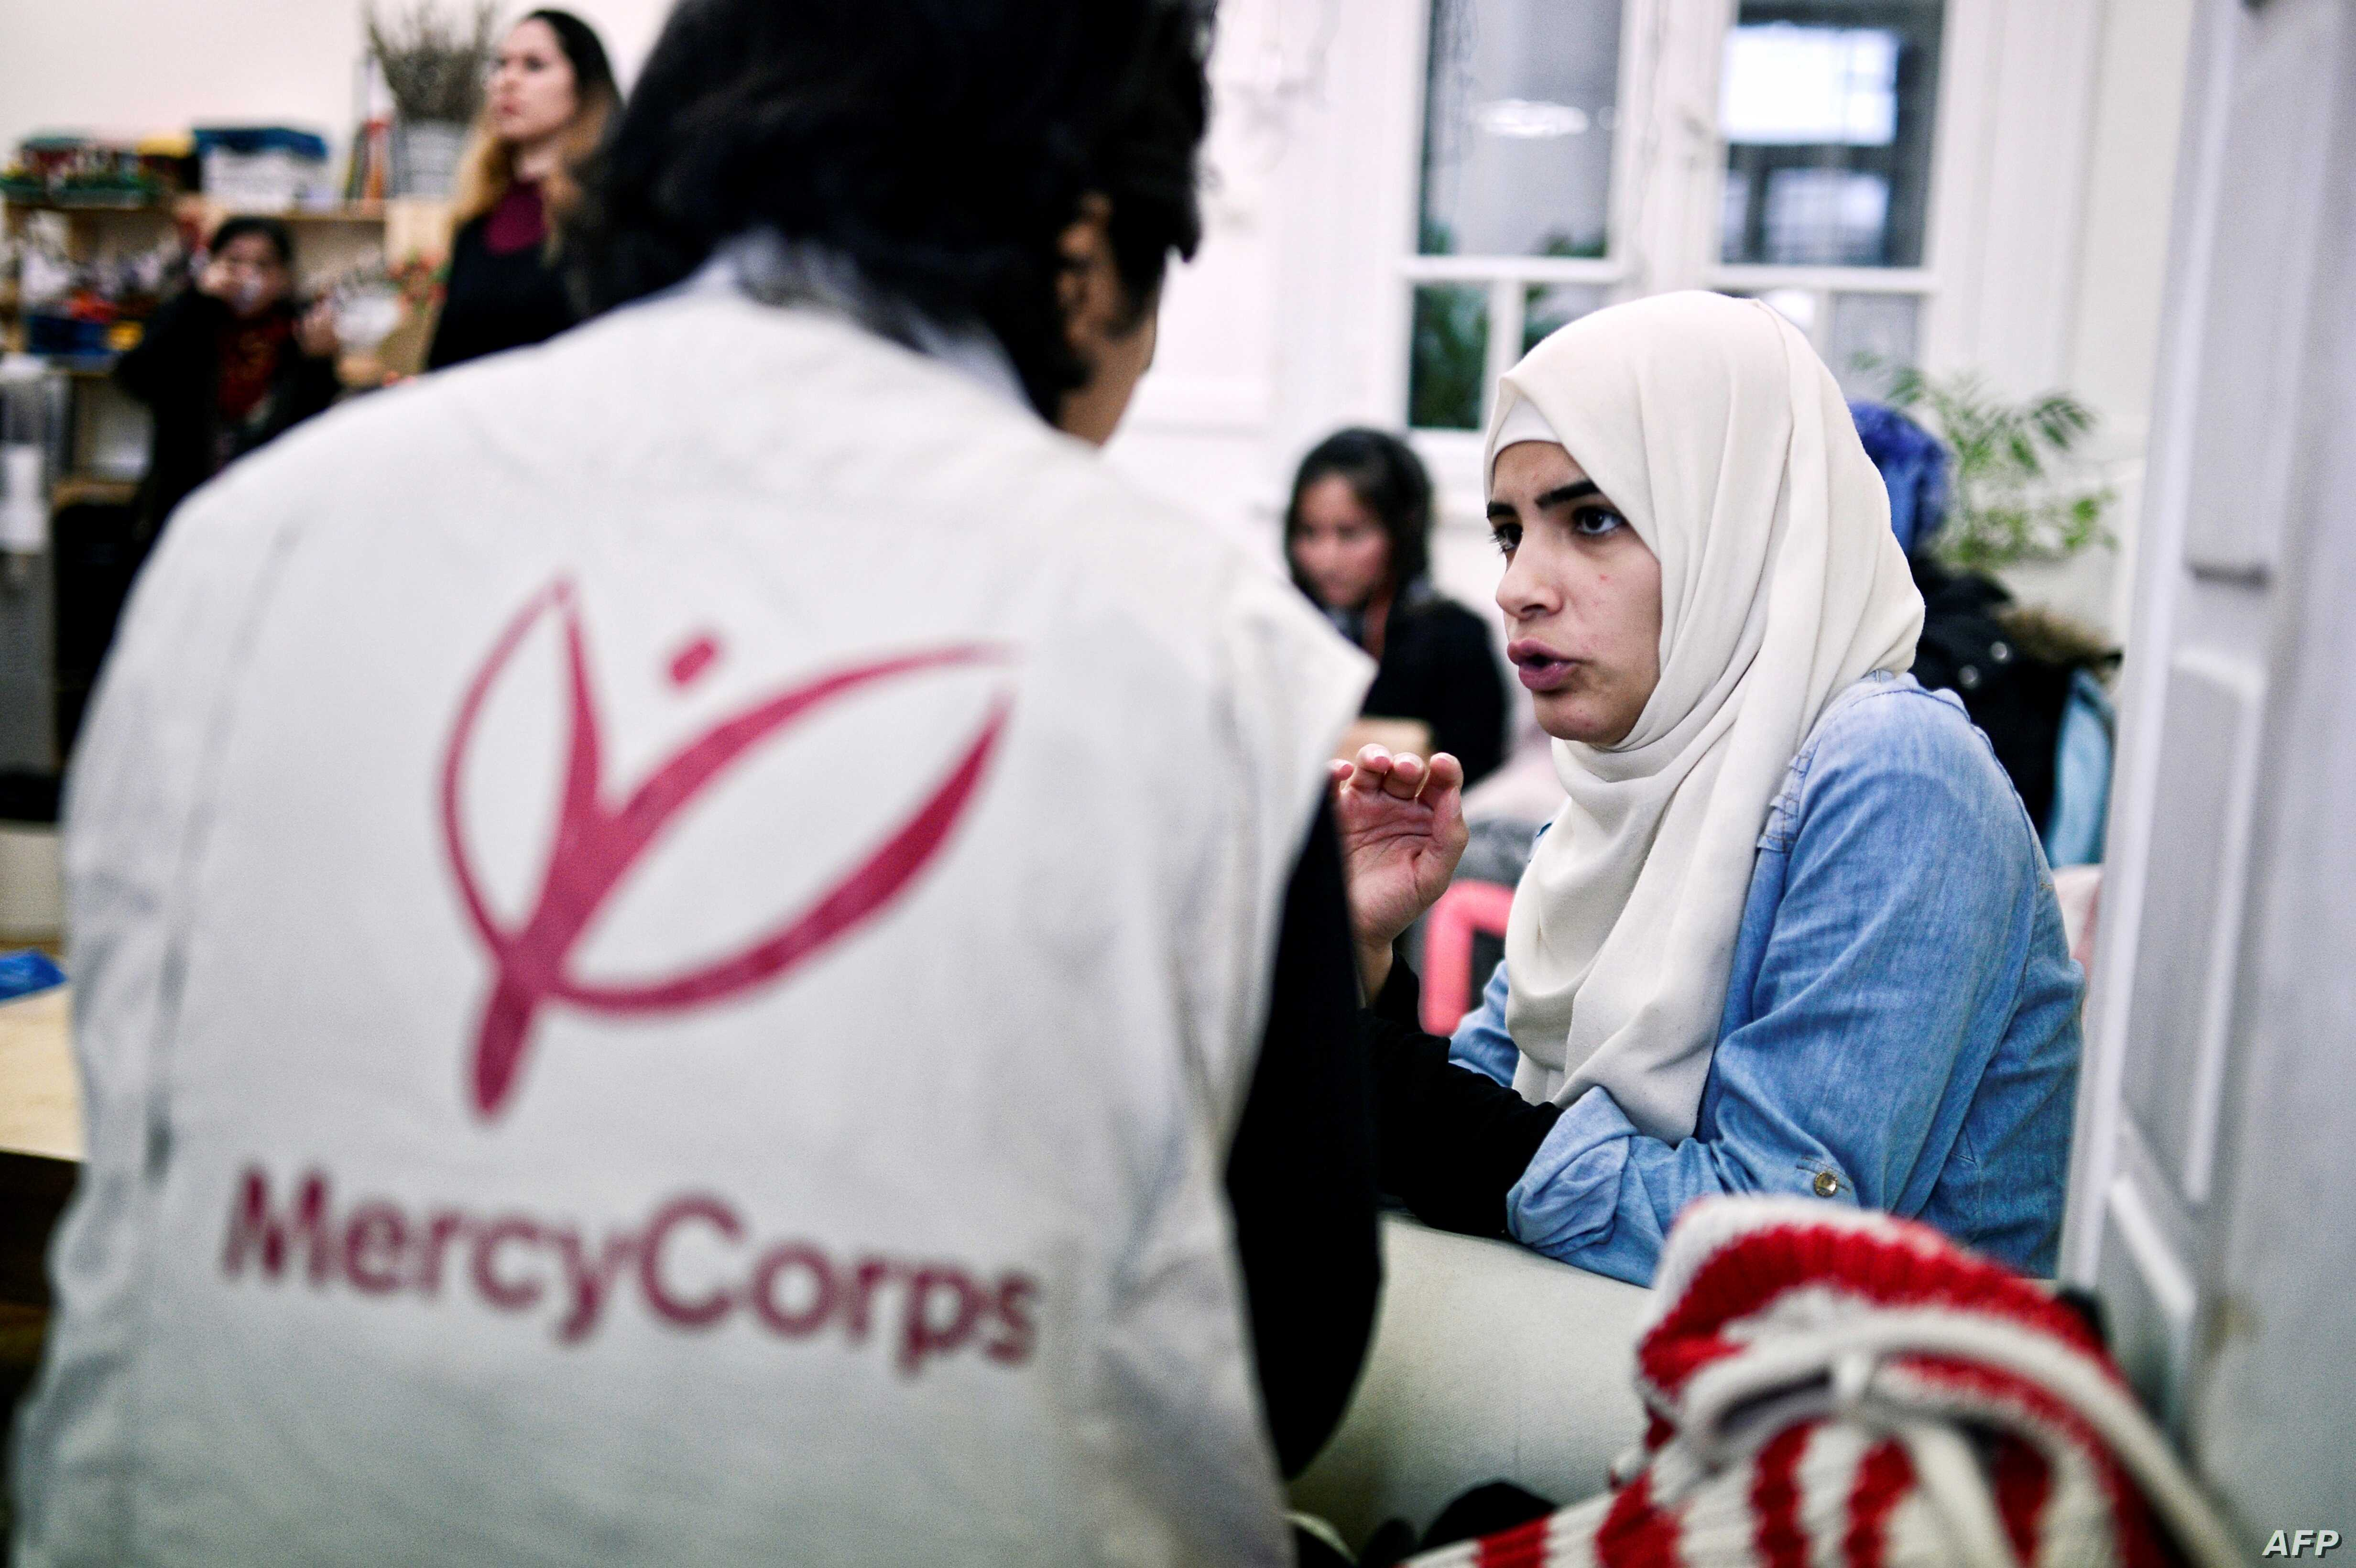 Iman Al Bohtori, right, a  Damascus University graduate, talks with a Mercy Corps translator at the 'Melissa' center for migrant women offering various classes and workshops to refugee women in Athens on March 10, 2017.